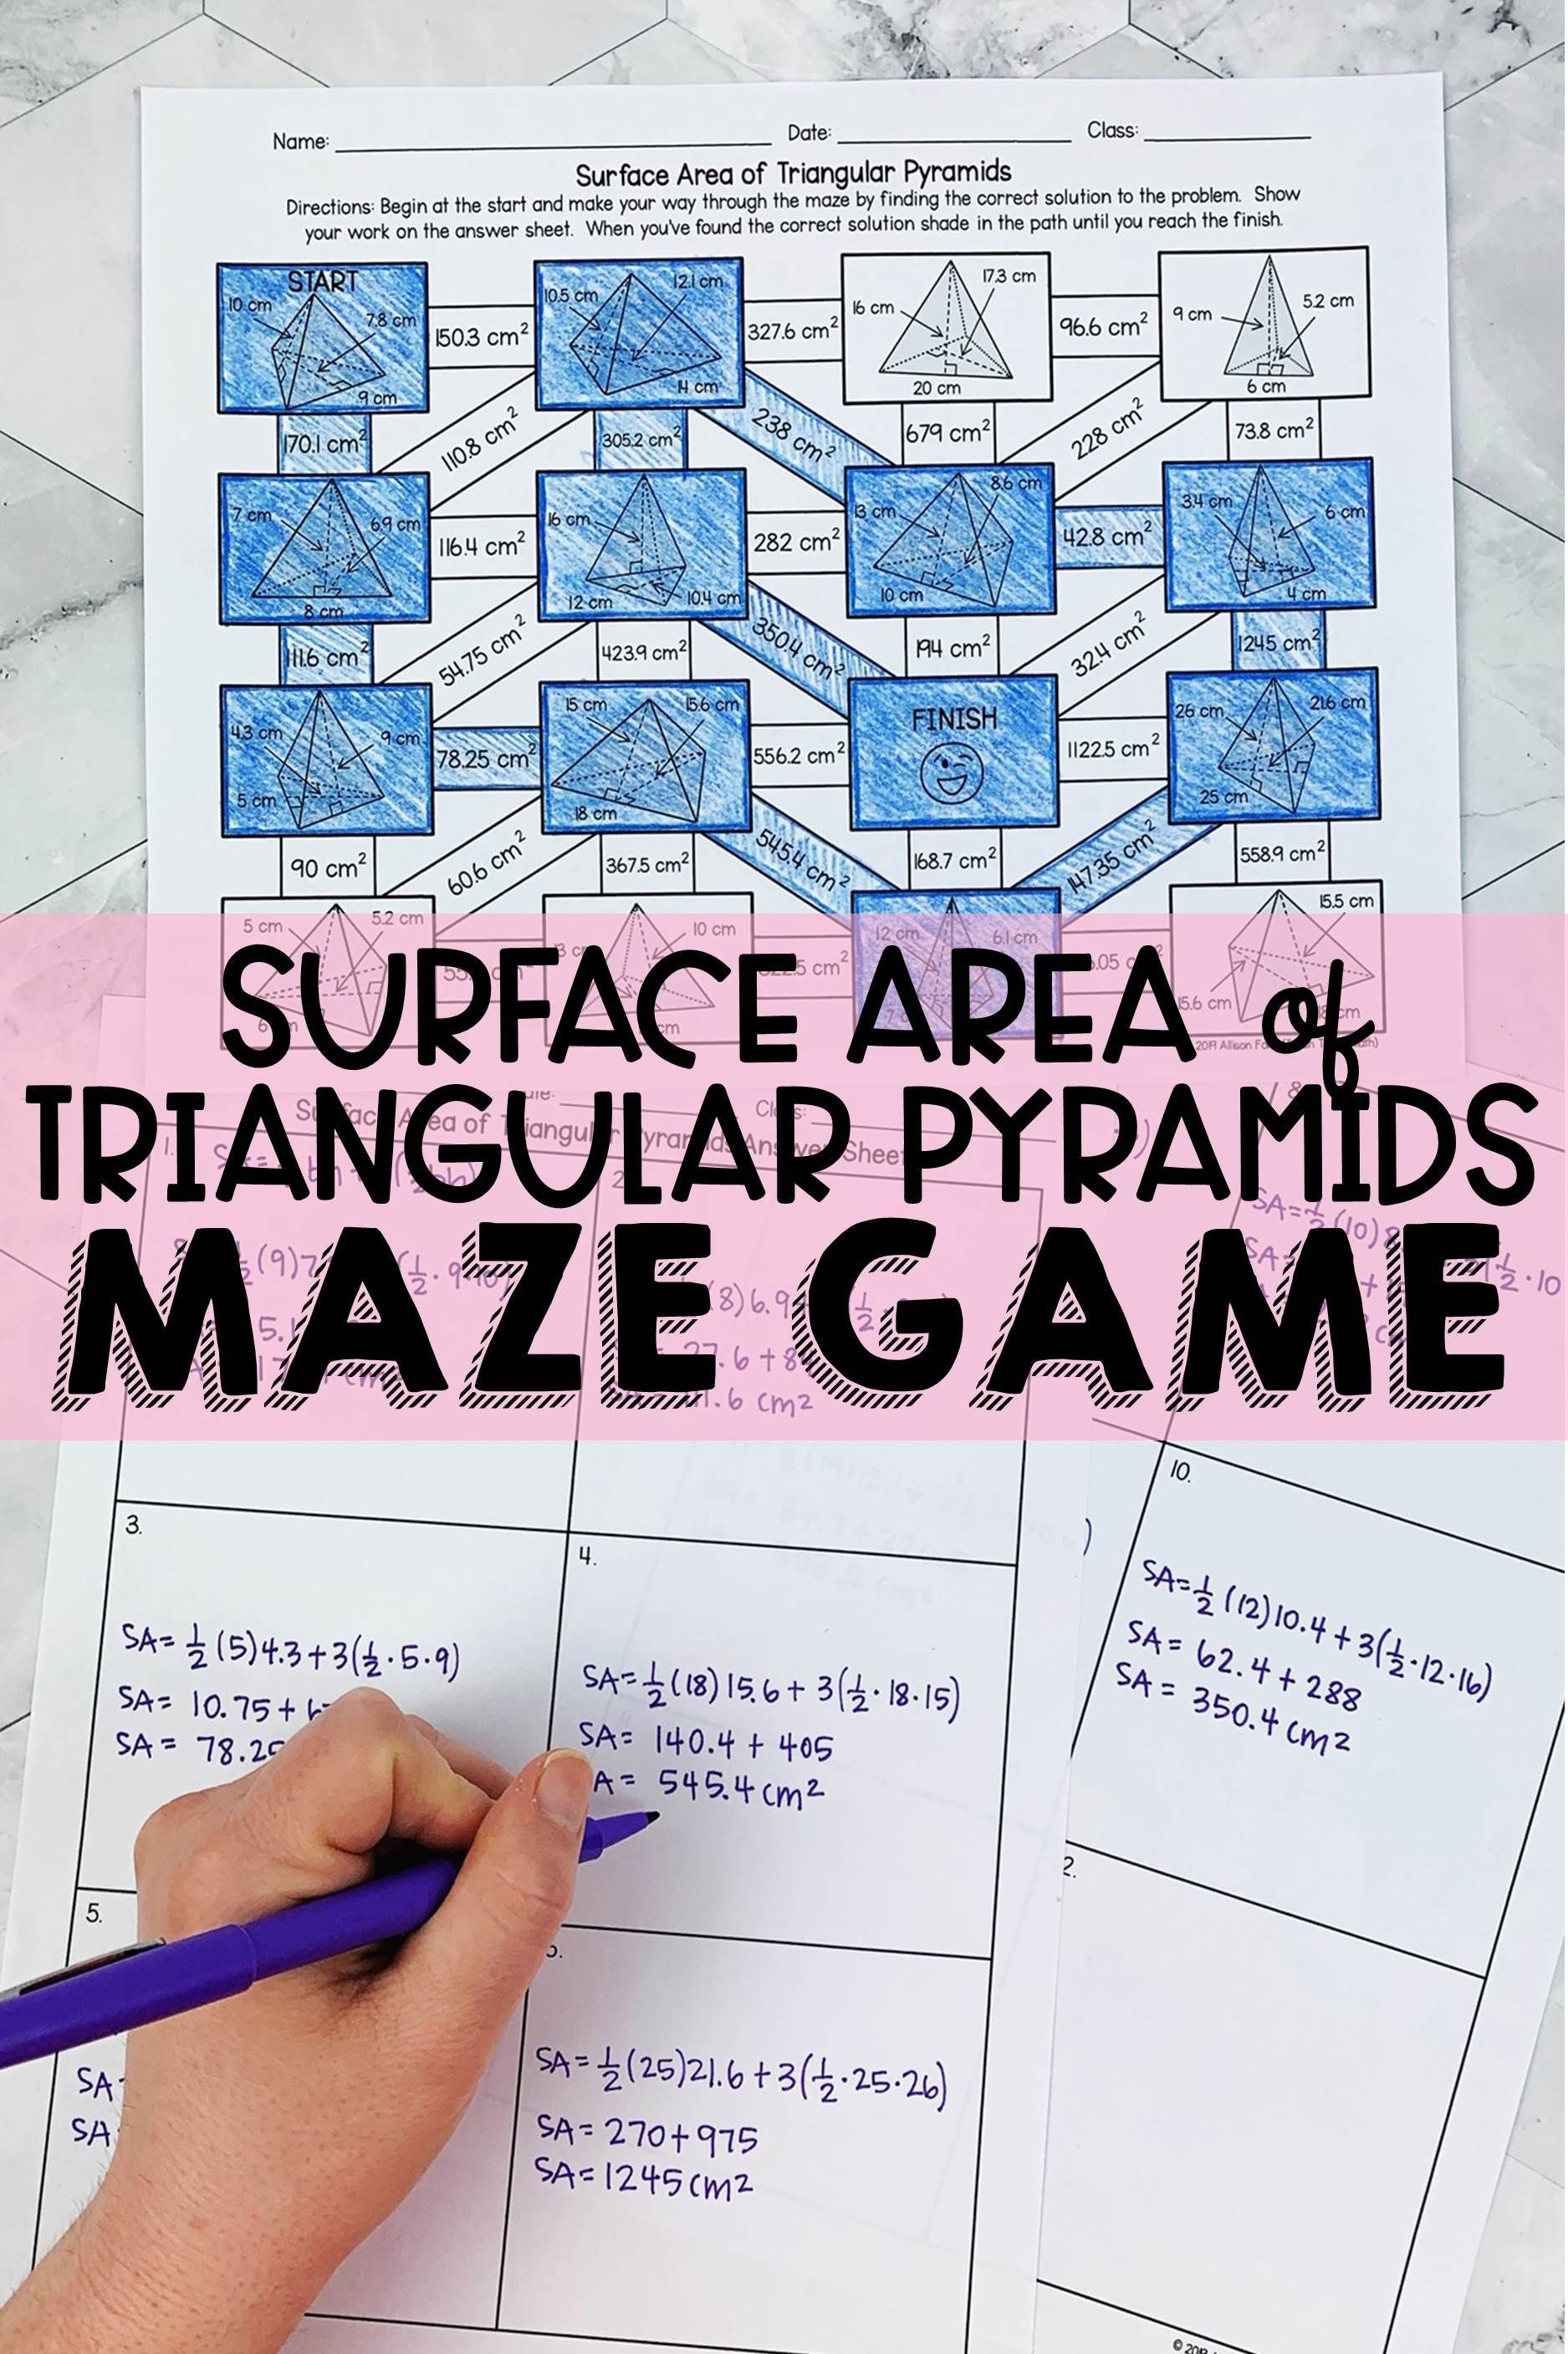 Surface Area Of Triangular Pyramids Maze Math Games Middle School Math Maze Middle School Math